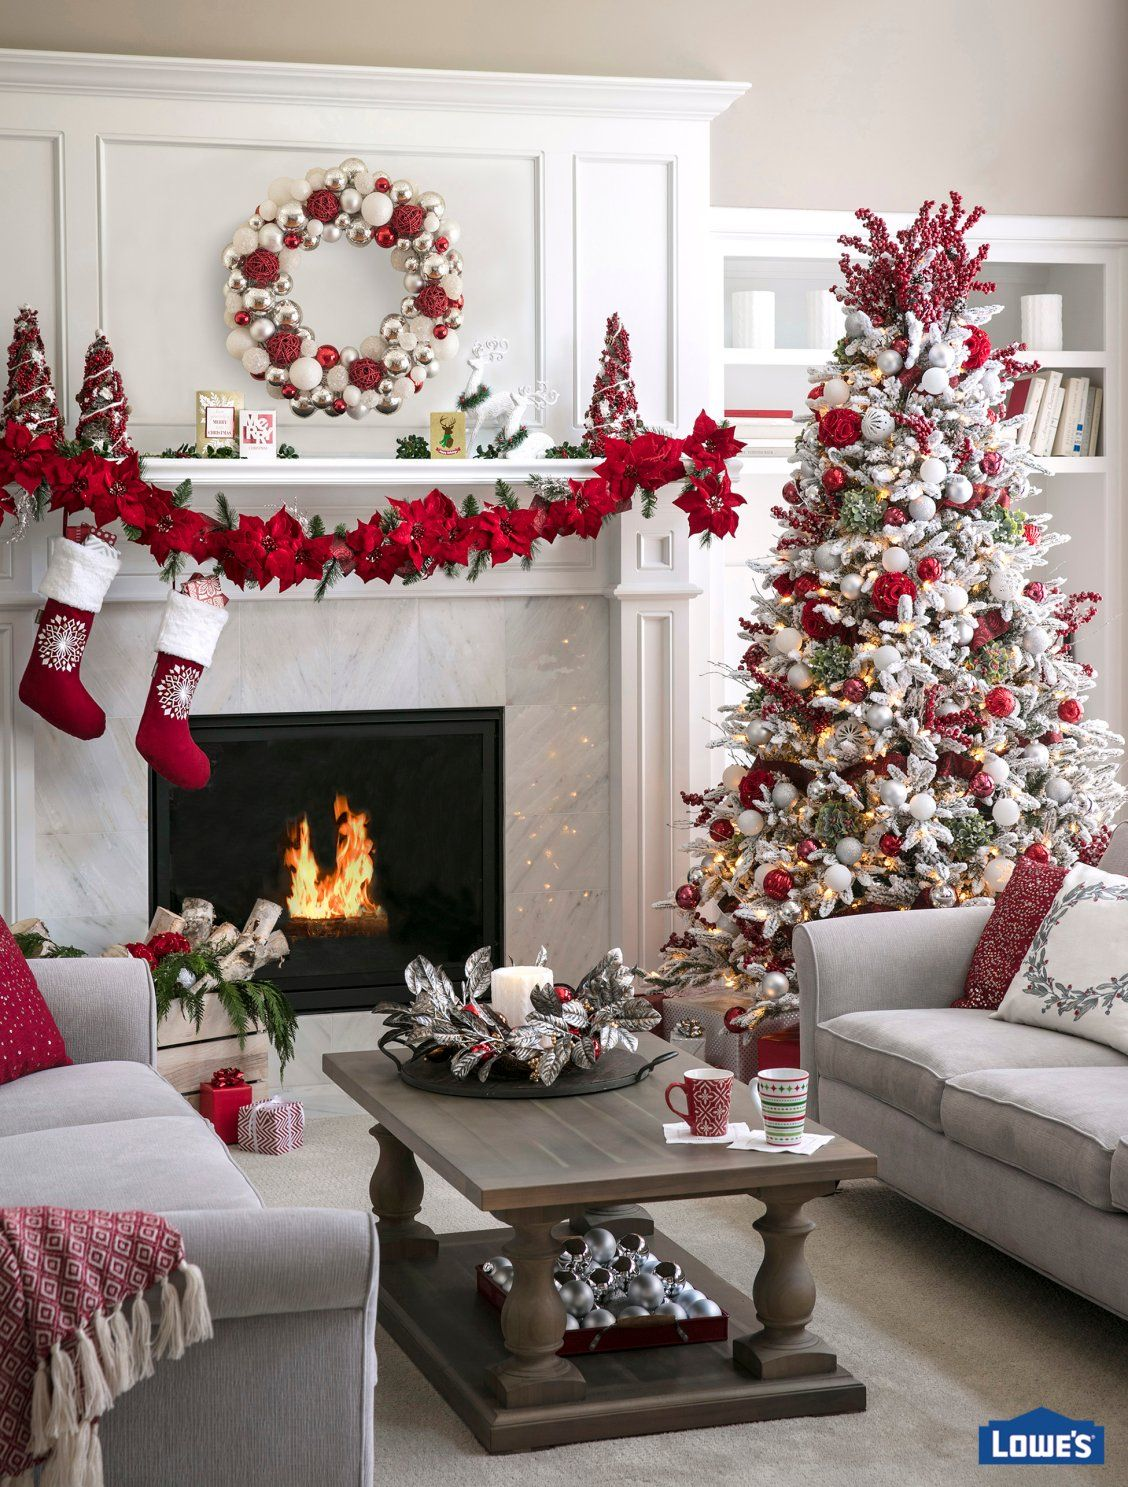 Make The Most Of An Open Floor Plan With Perfectly Placed Holiday